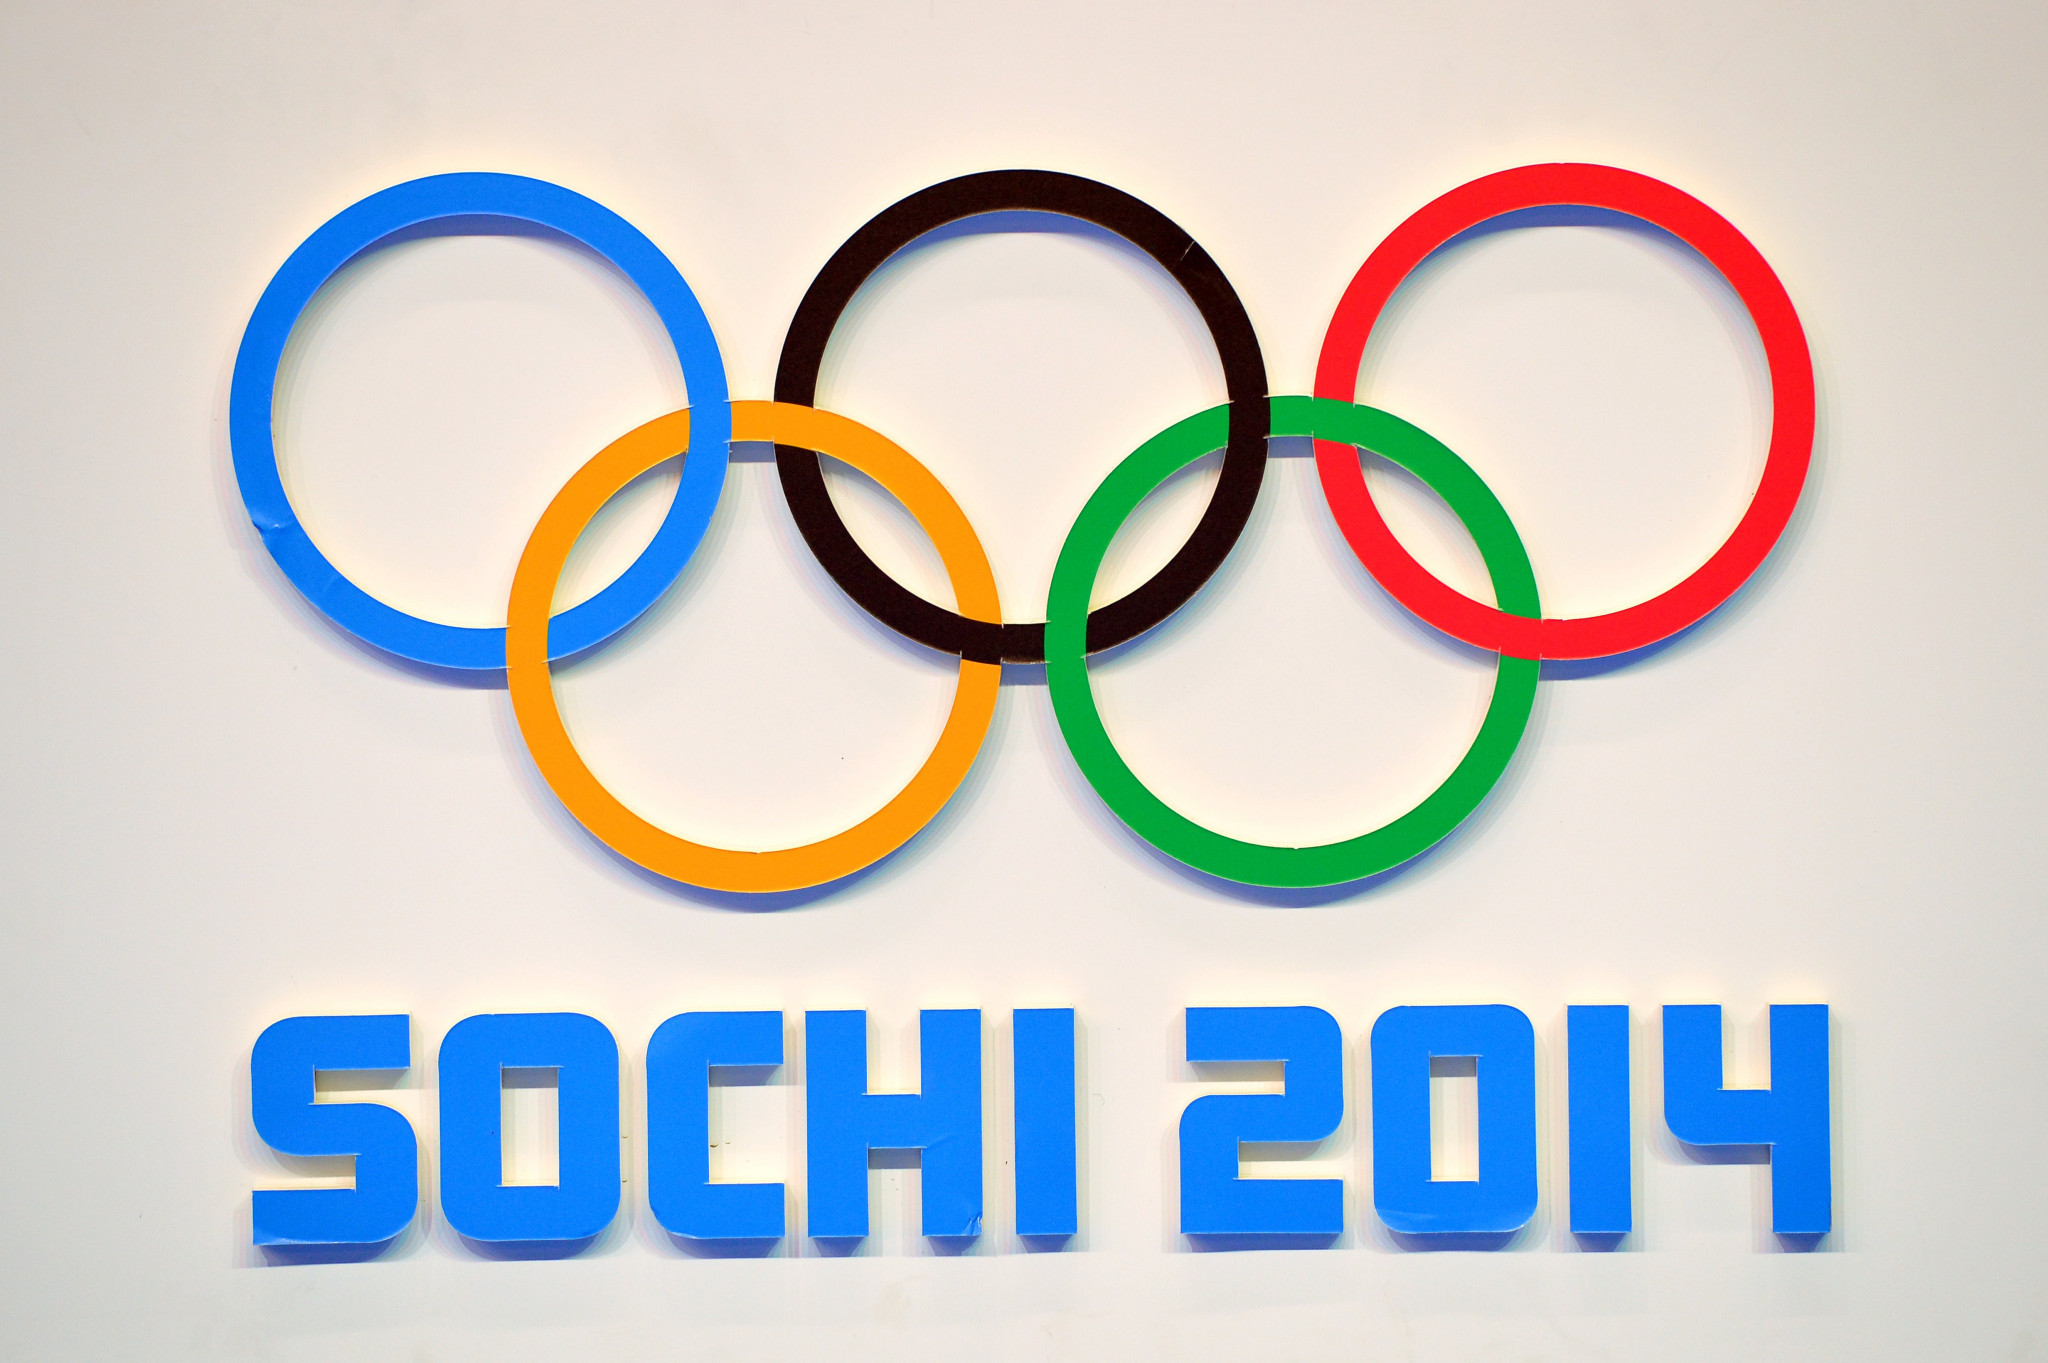 Businessman Vandyshev handed to Russian authorities over accusations of embezzlement during construction of Sochi 2014 venues